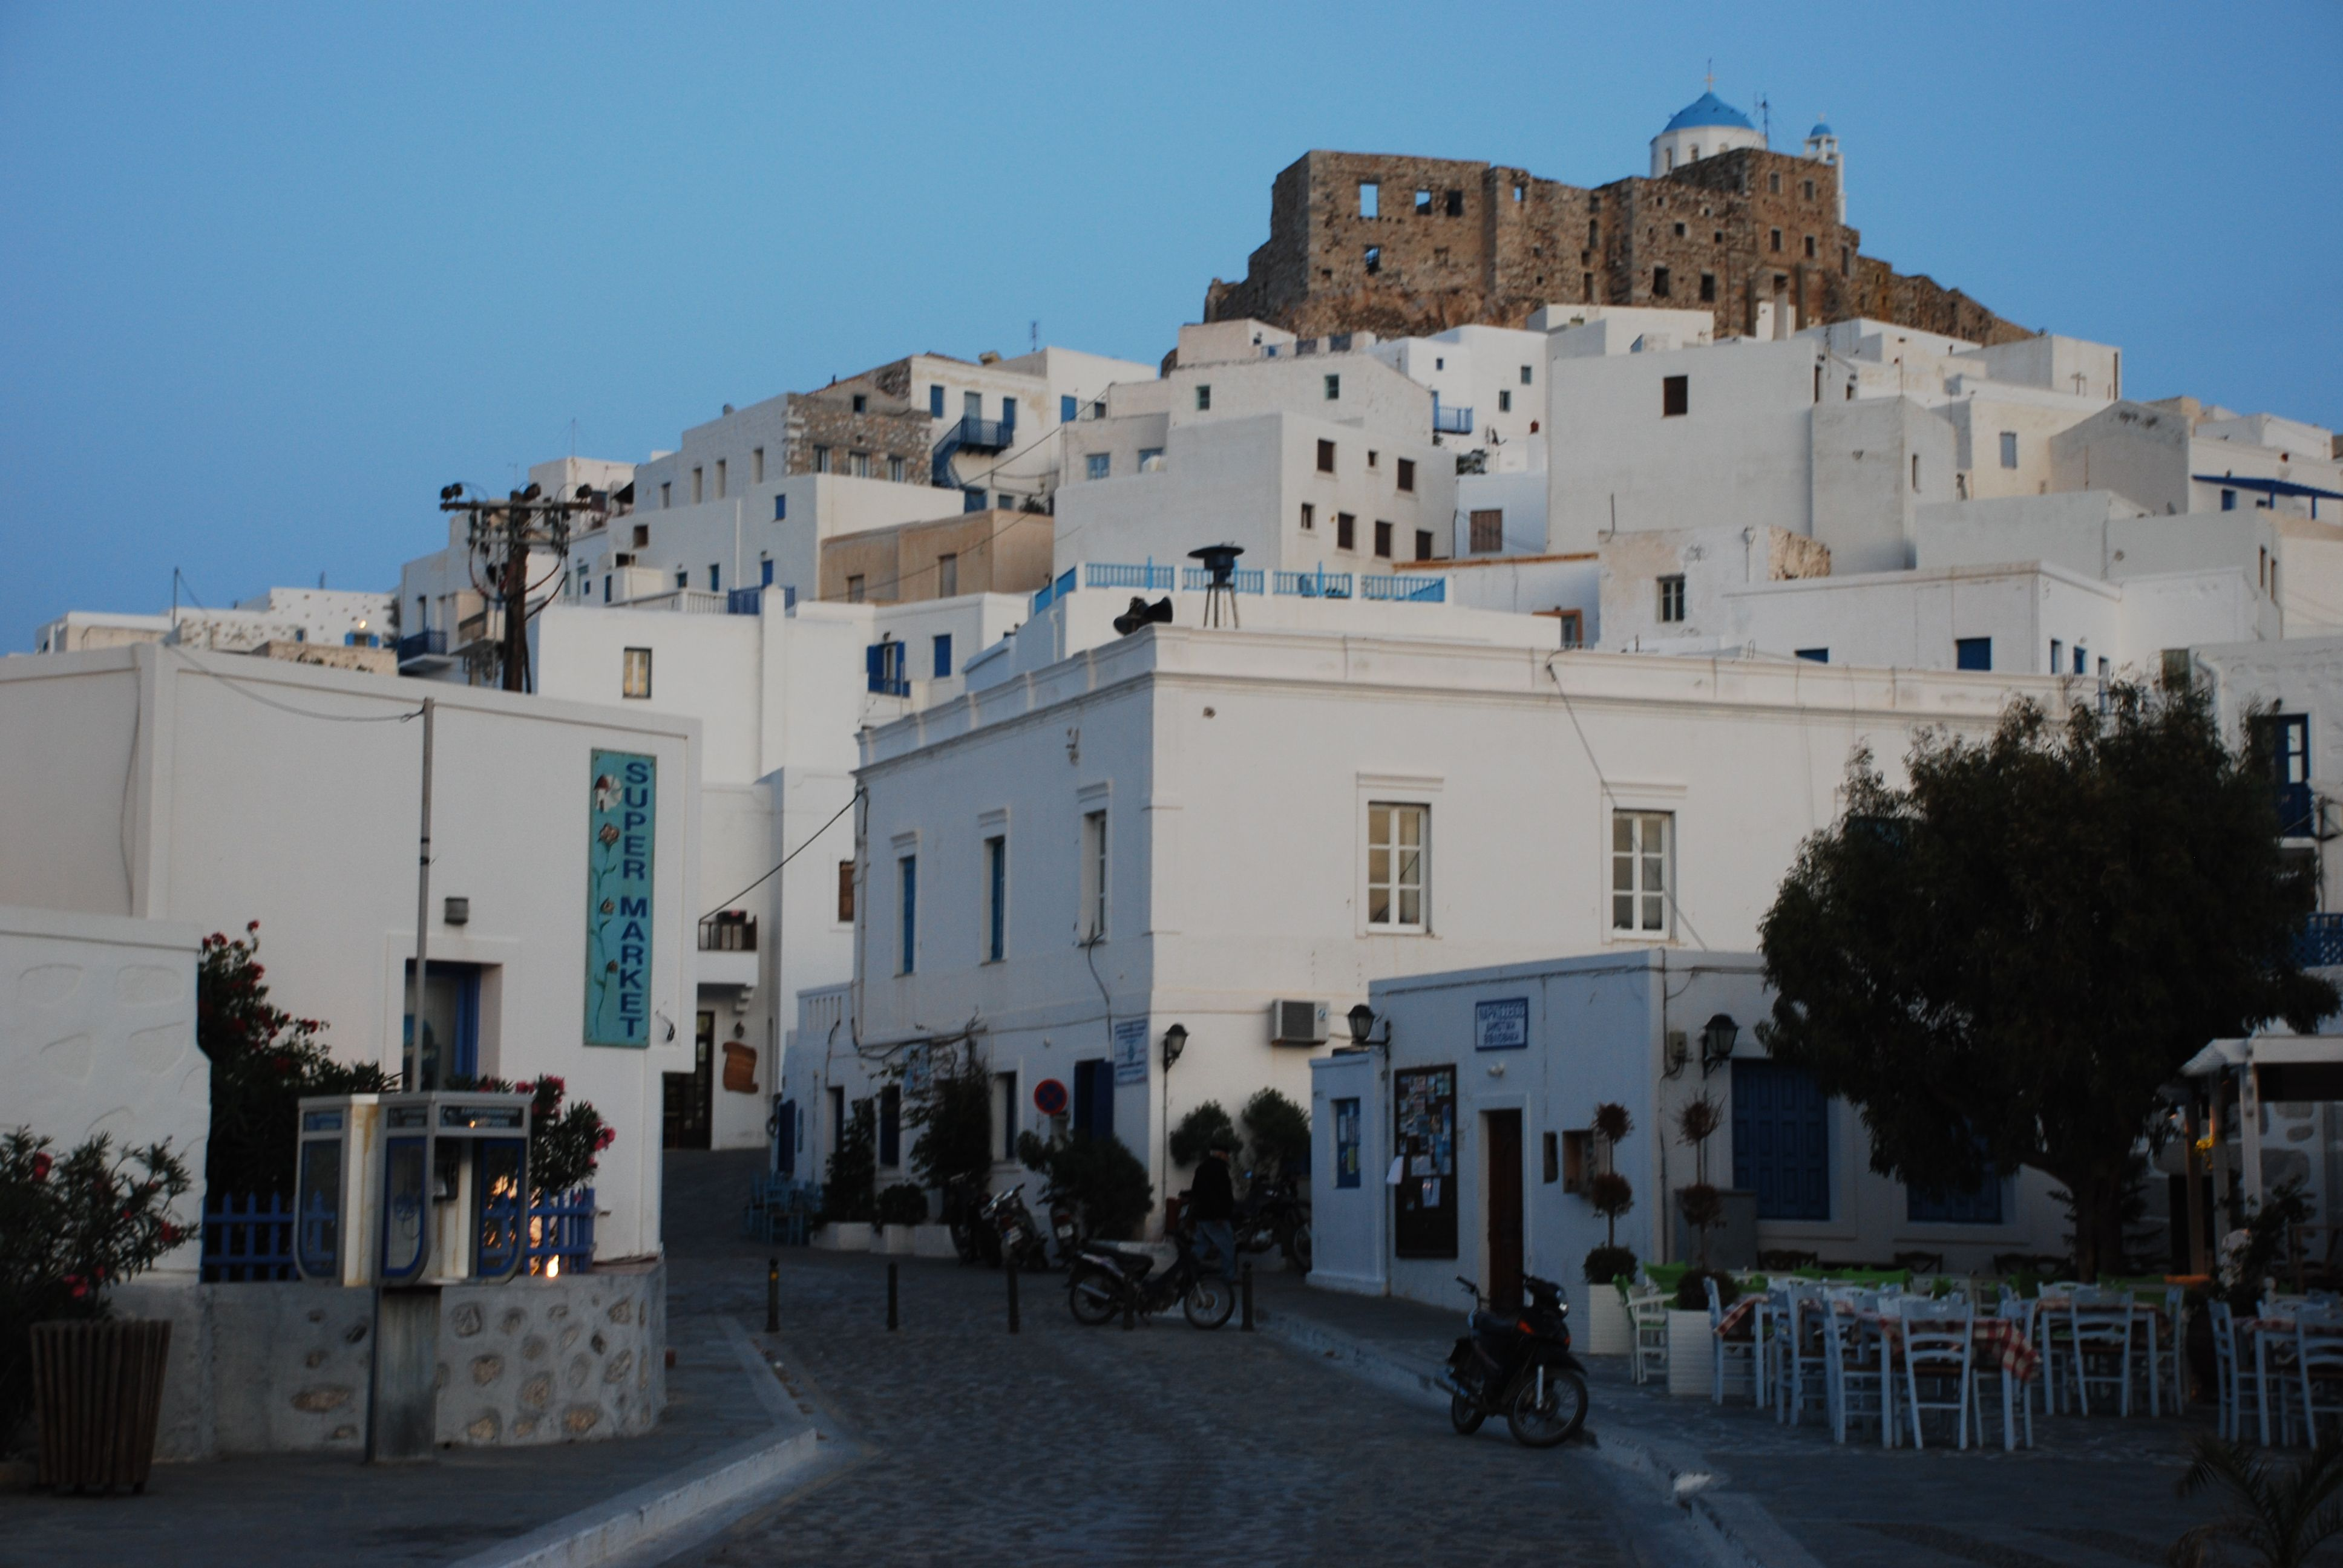 Visiting the town center in Astipalea, Greece Greek